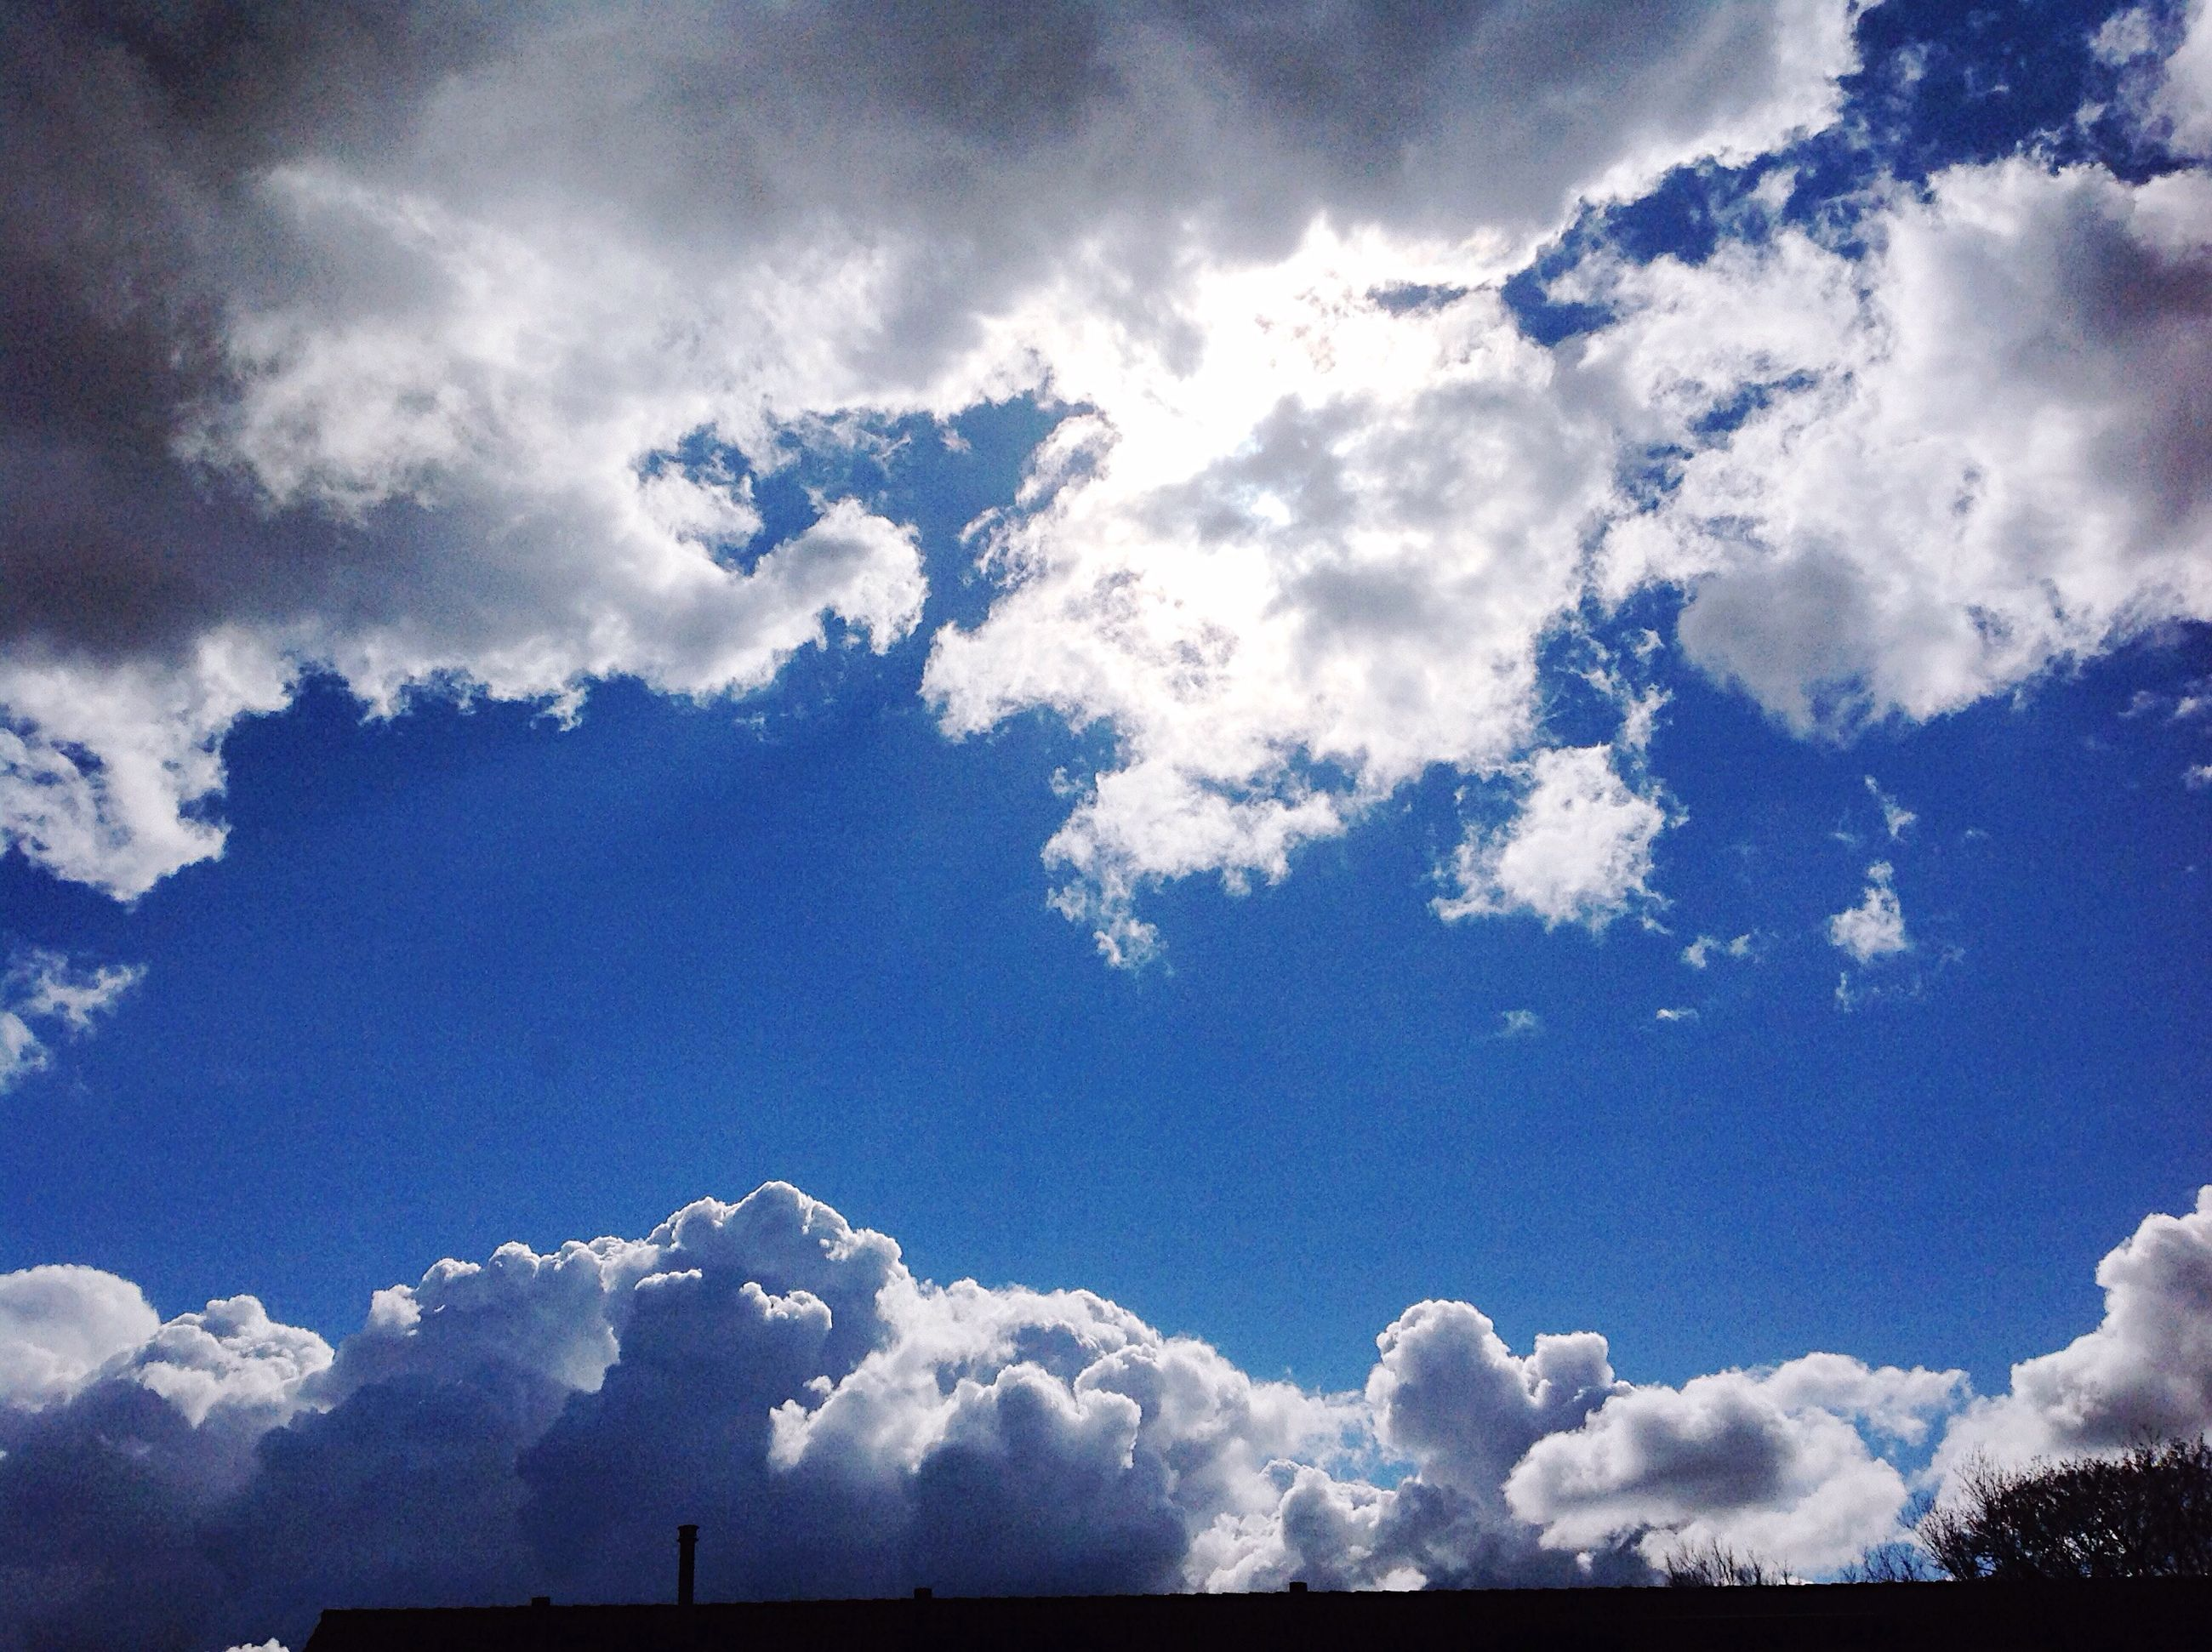 sky, low angle view, cloud - sky, cloudy, beauty in nature, blue, tranquility, cloud, nature, scenics, tranquil scene, cloudscape, weather, day, tree, outdoors, idyllic, no people, white color, overcast